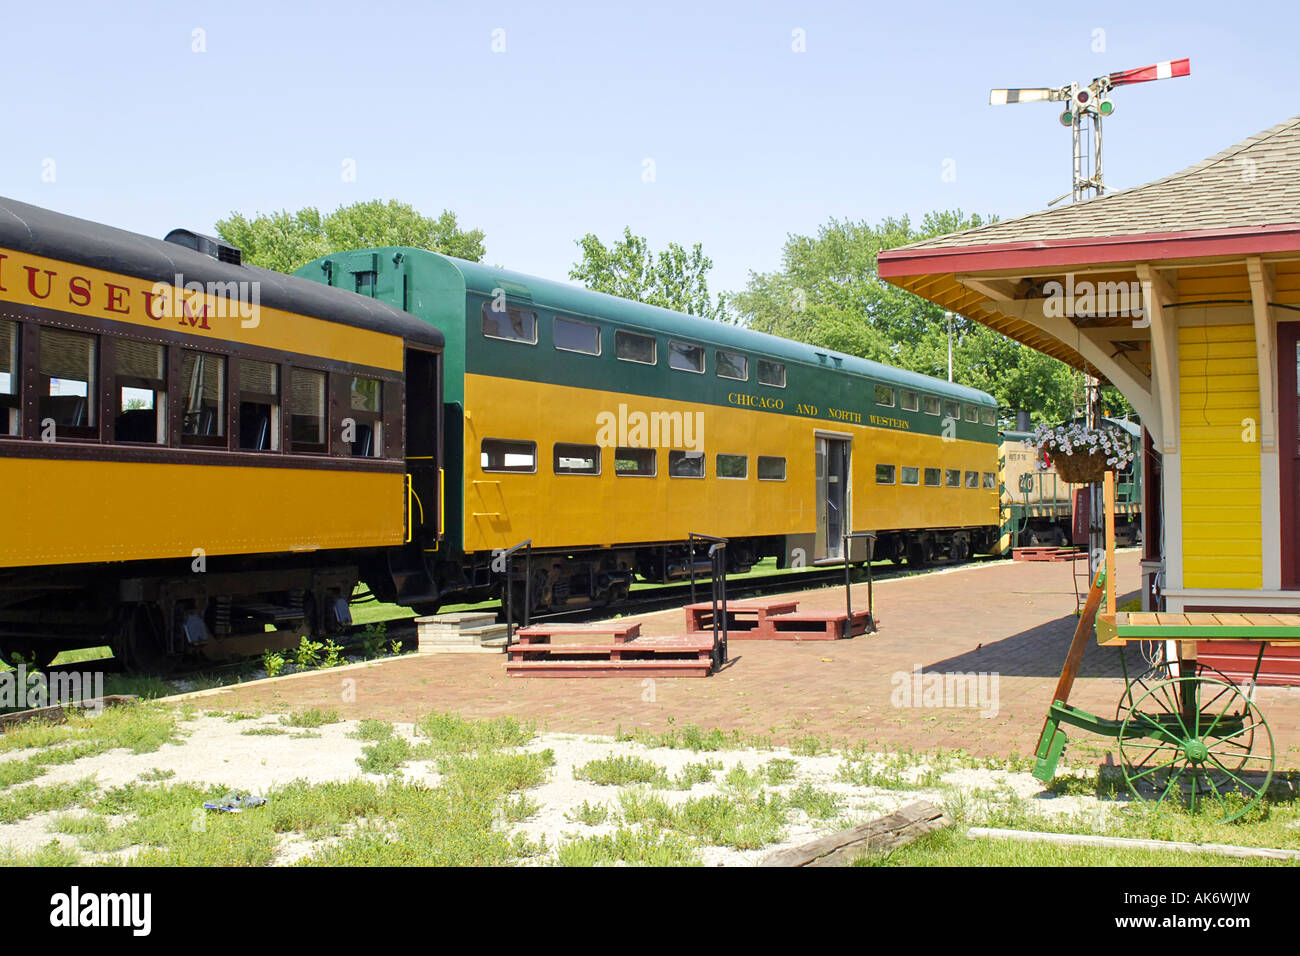 National Railroad Museum >> Railroad Carriage Ride At The National Railroad Museum Green Bay